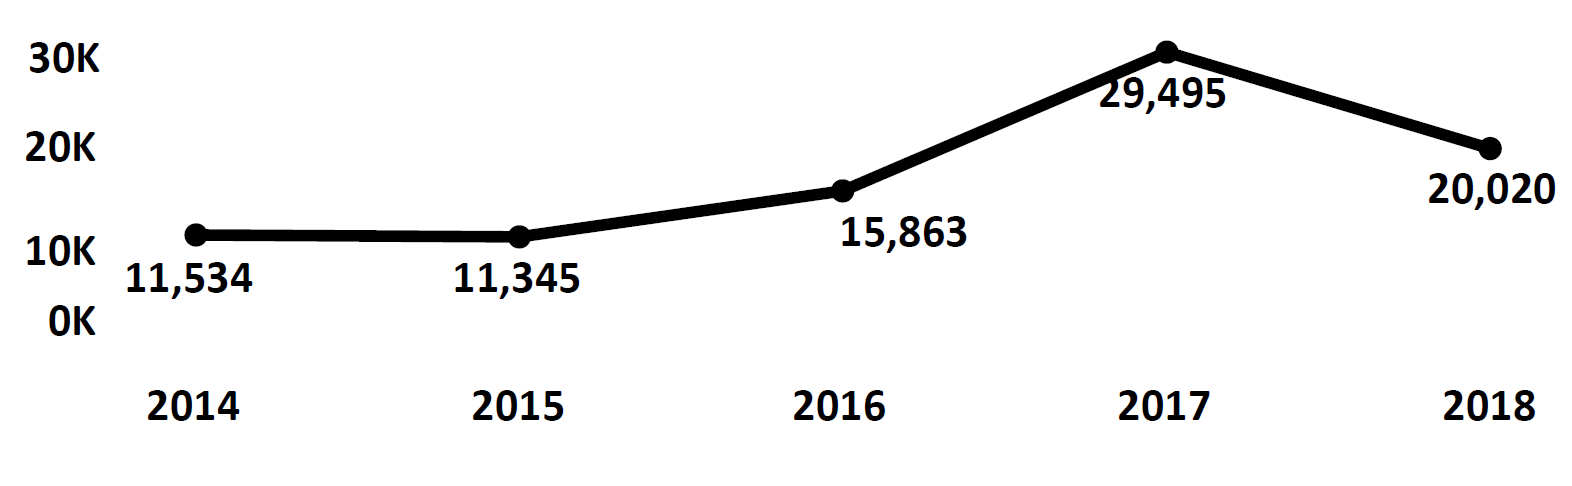 Graph of Do Not Call complaints recorded in Maine from fiscal year 2014 to fiscal year 2018. In 2014 there were 11,534 complaints filed, which dropped slightly the next year the increased each year to peak at 29,495 in 2017.  In 2018 there were 20,020 complaints filed, fewer than 2017.